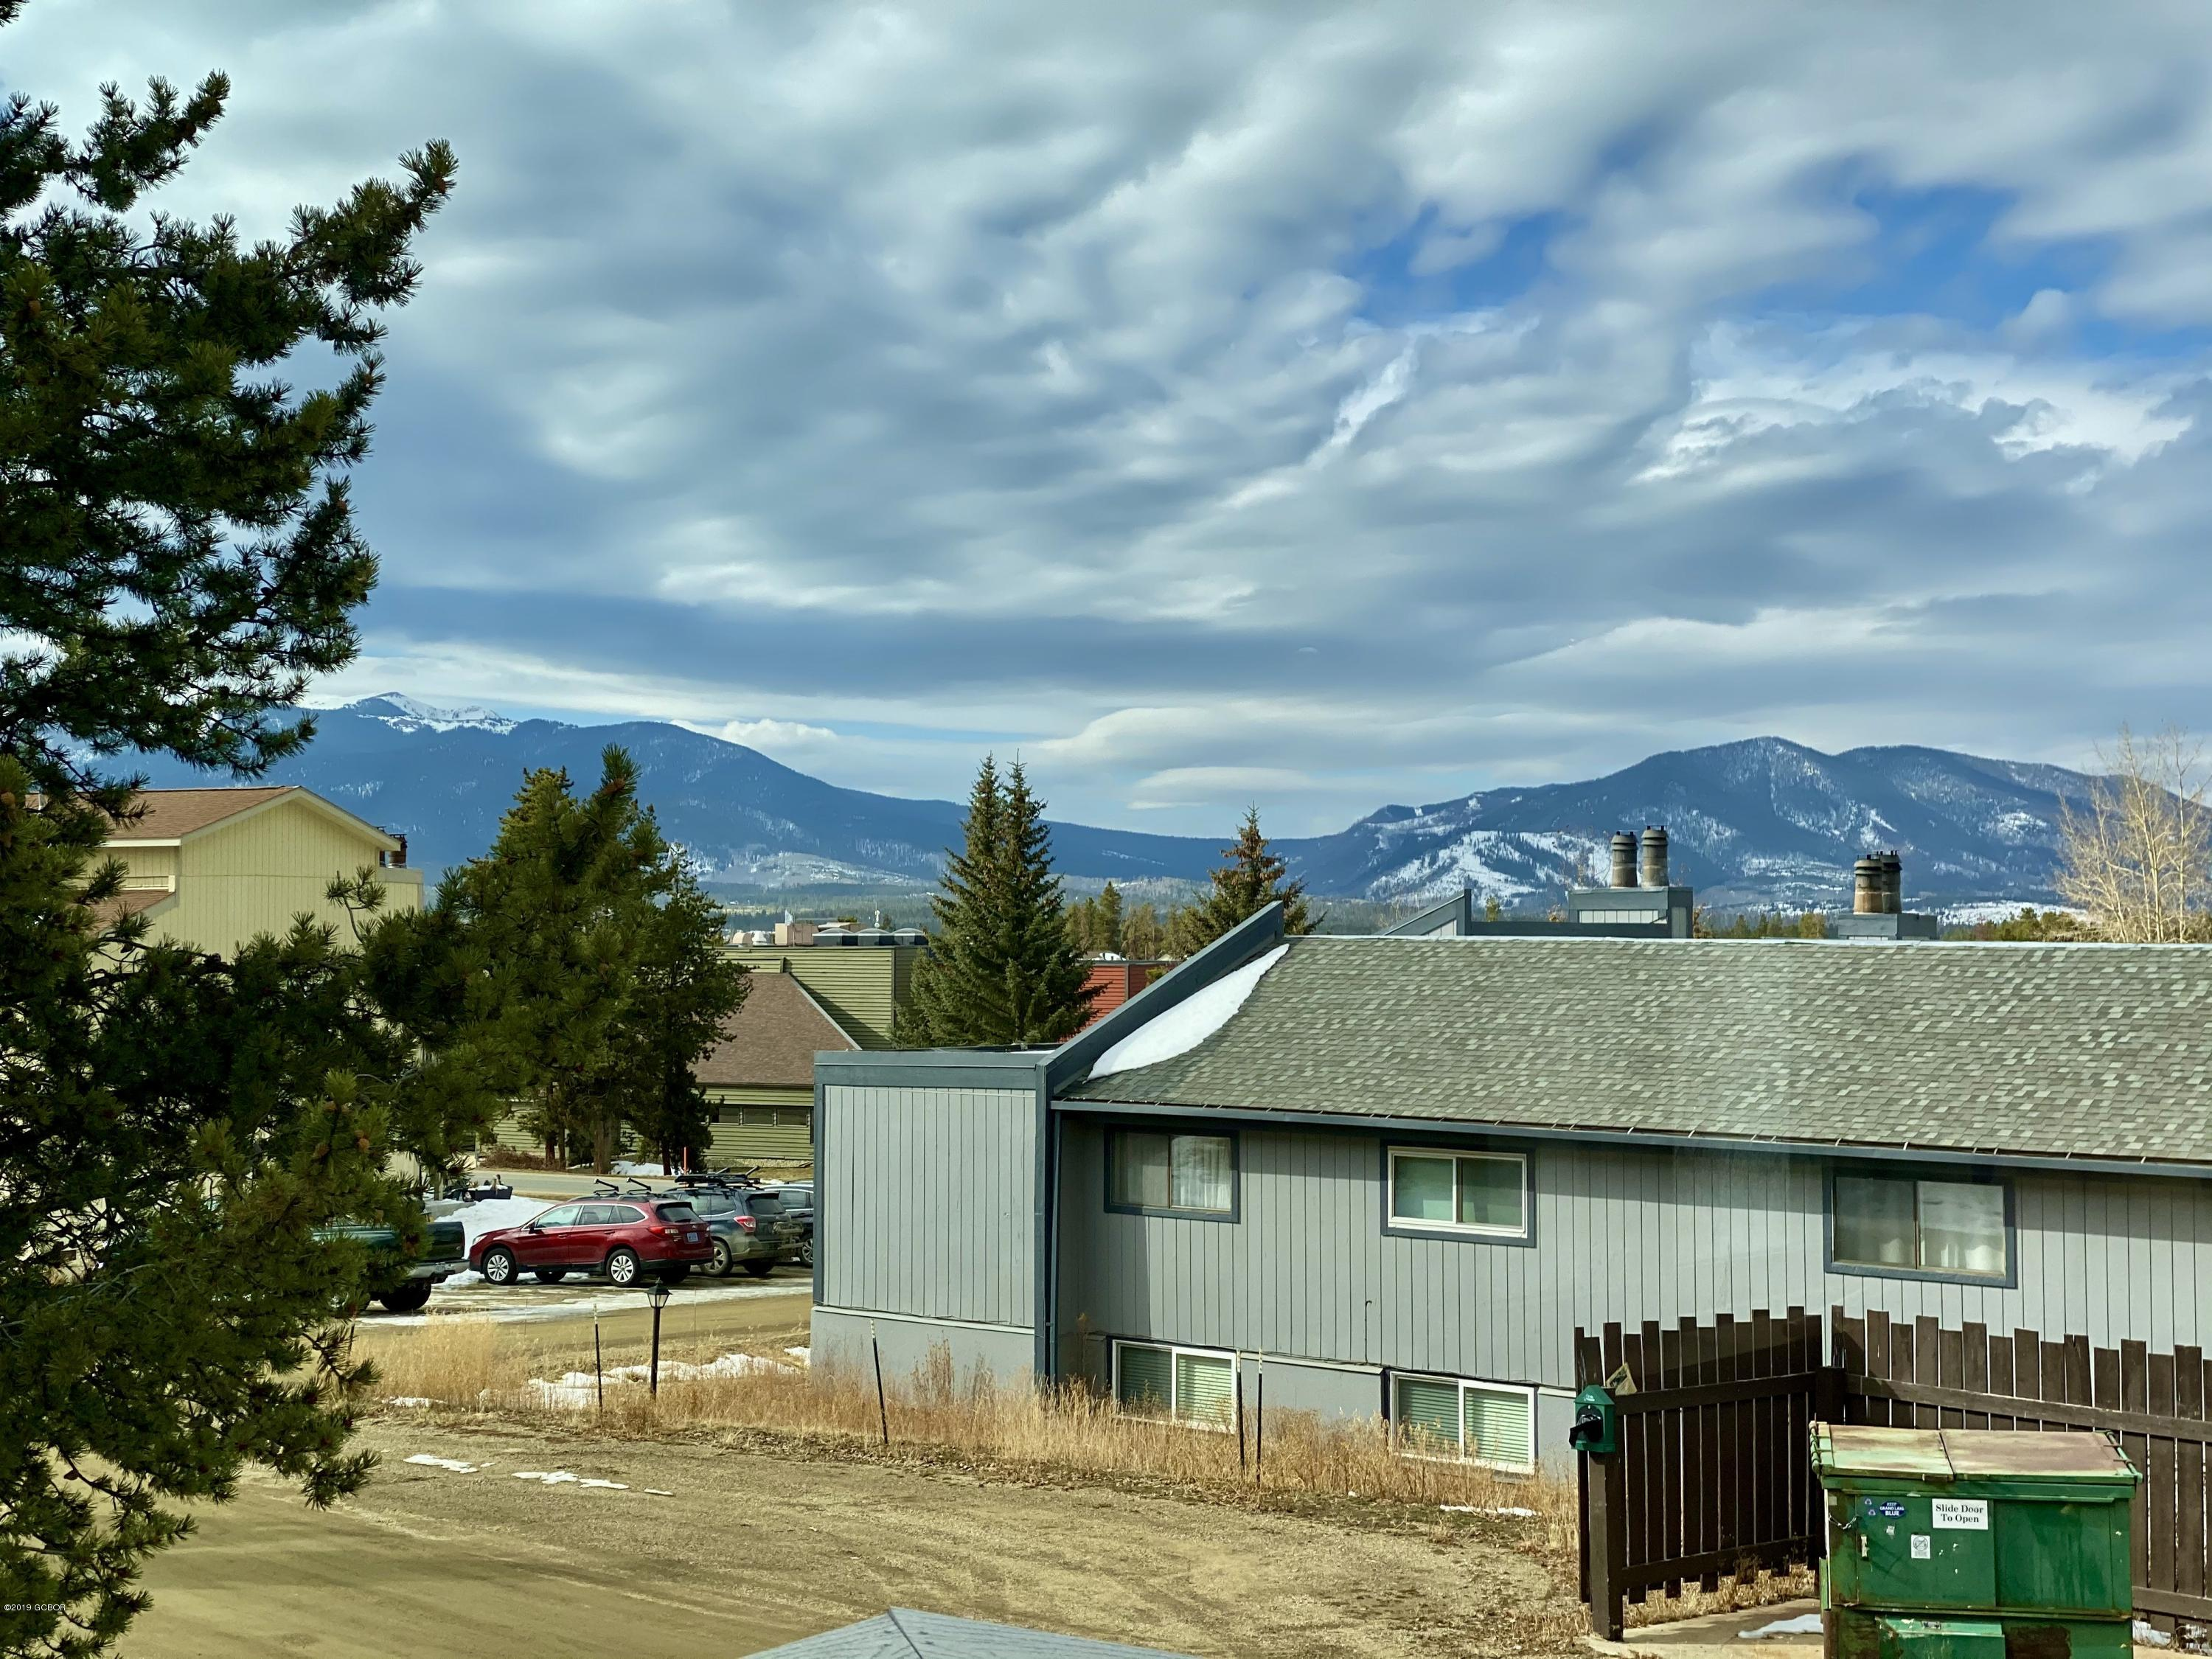 MLS# 19-1680 - 1 - 236  Gcr 838 14-8, Fraser, CO 80442